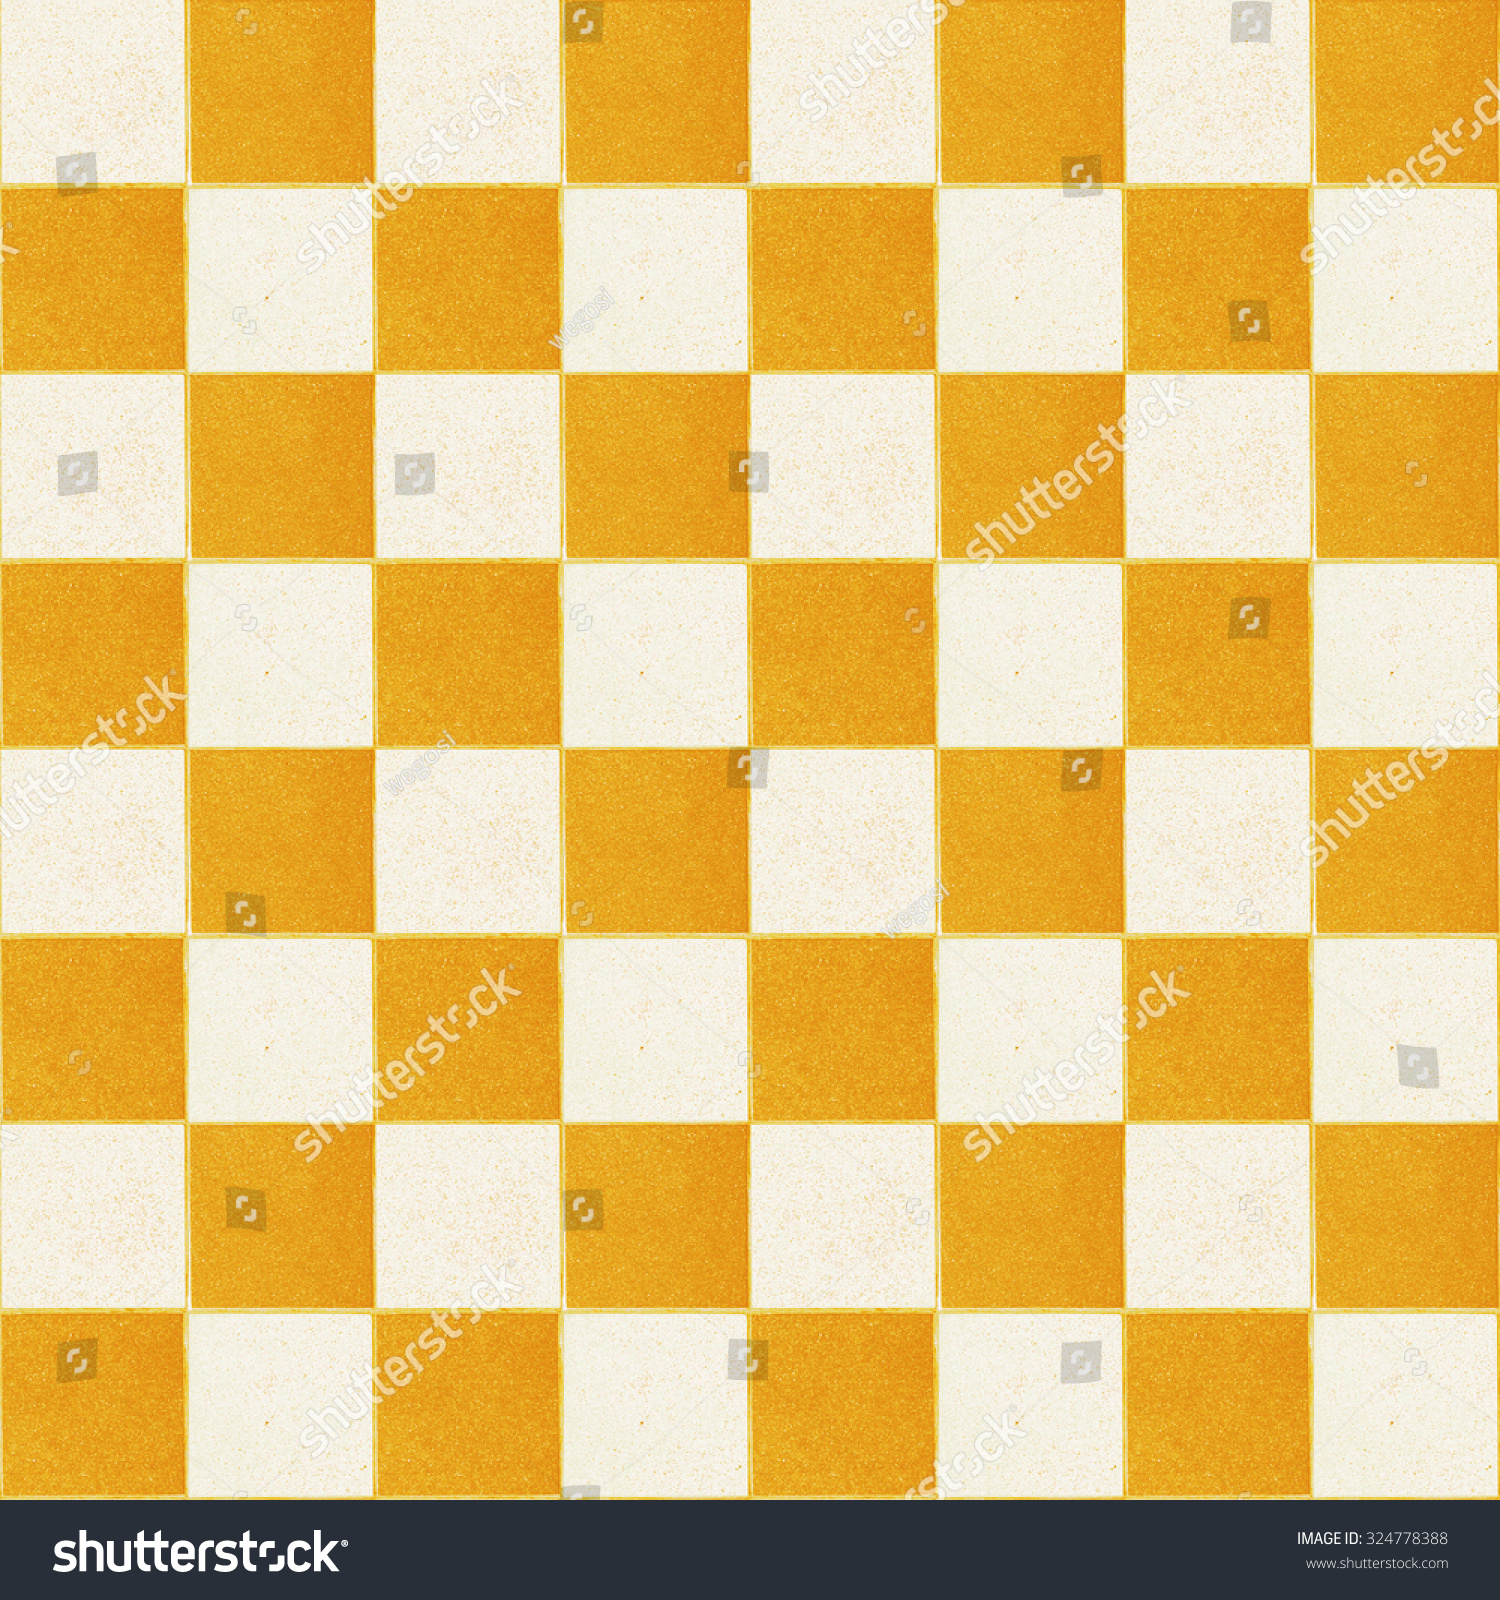 Old Checker Yellow Chess Square Tiles Stock Photo